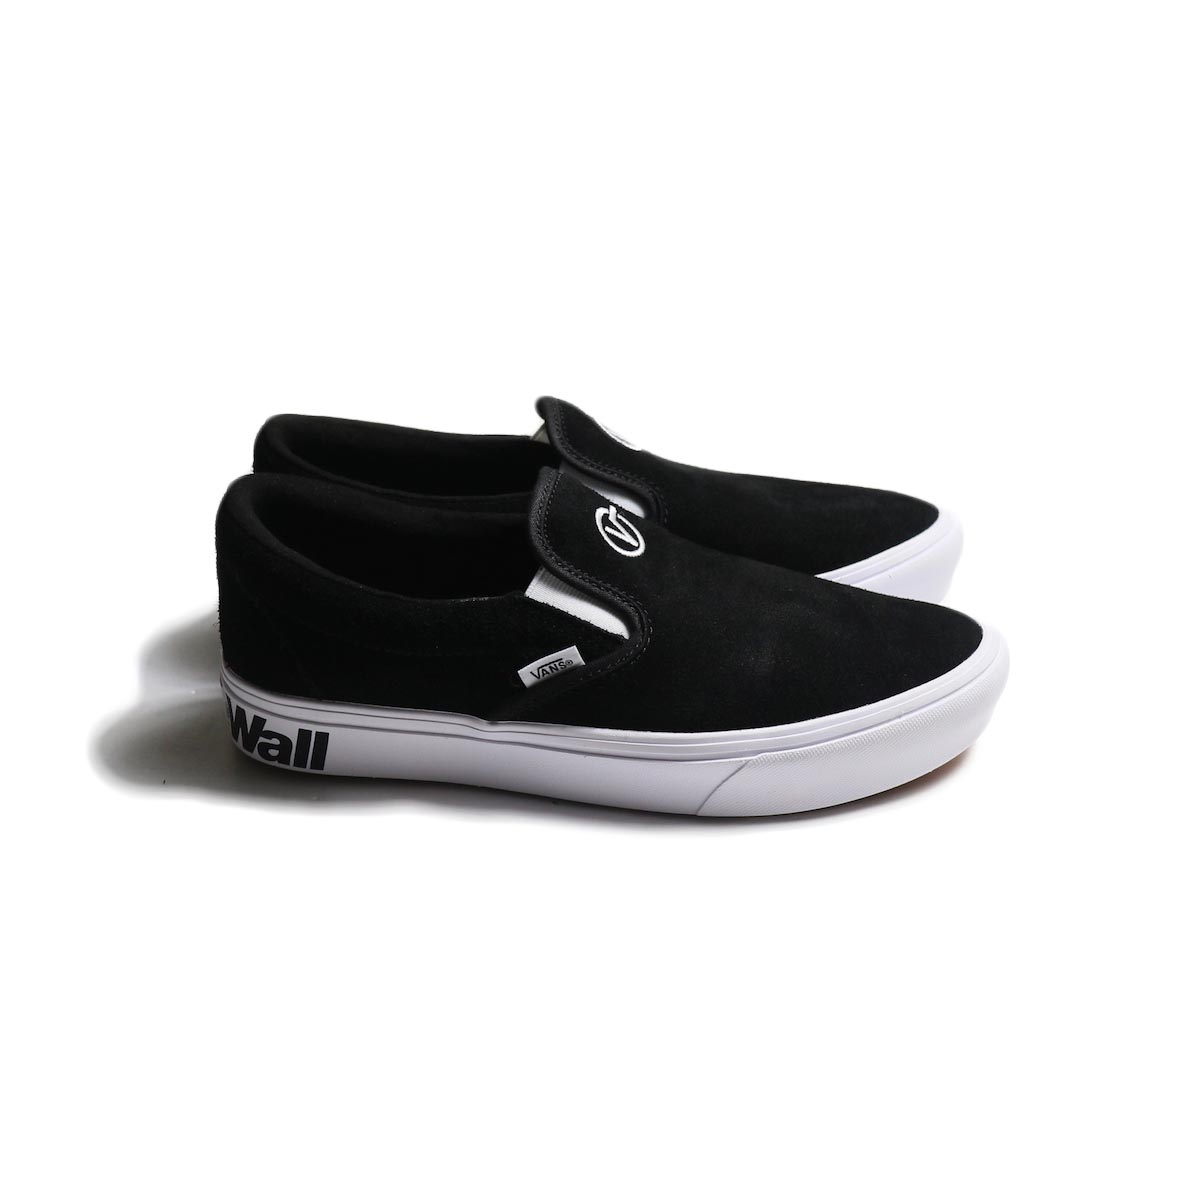 VANS / COMFYCUSH SLIP-ON (DISTORT) -Black/True White